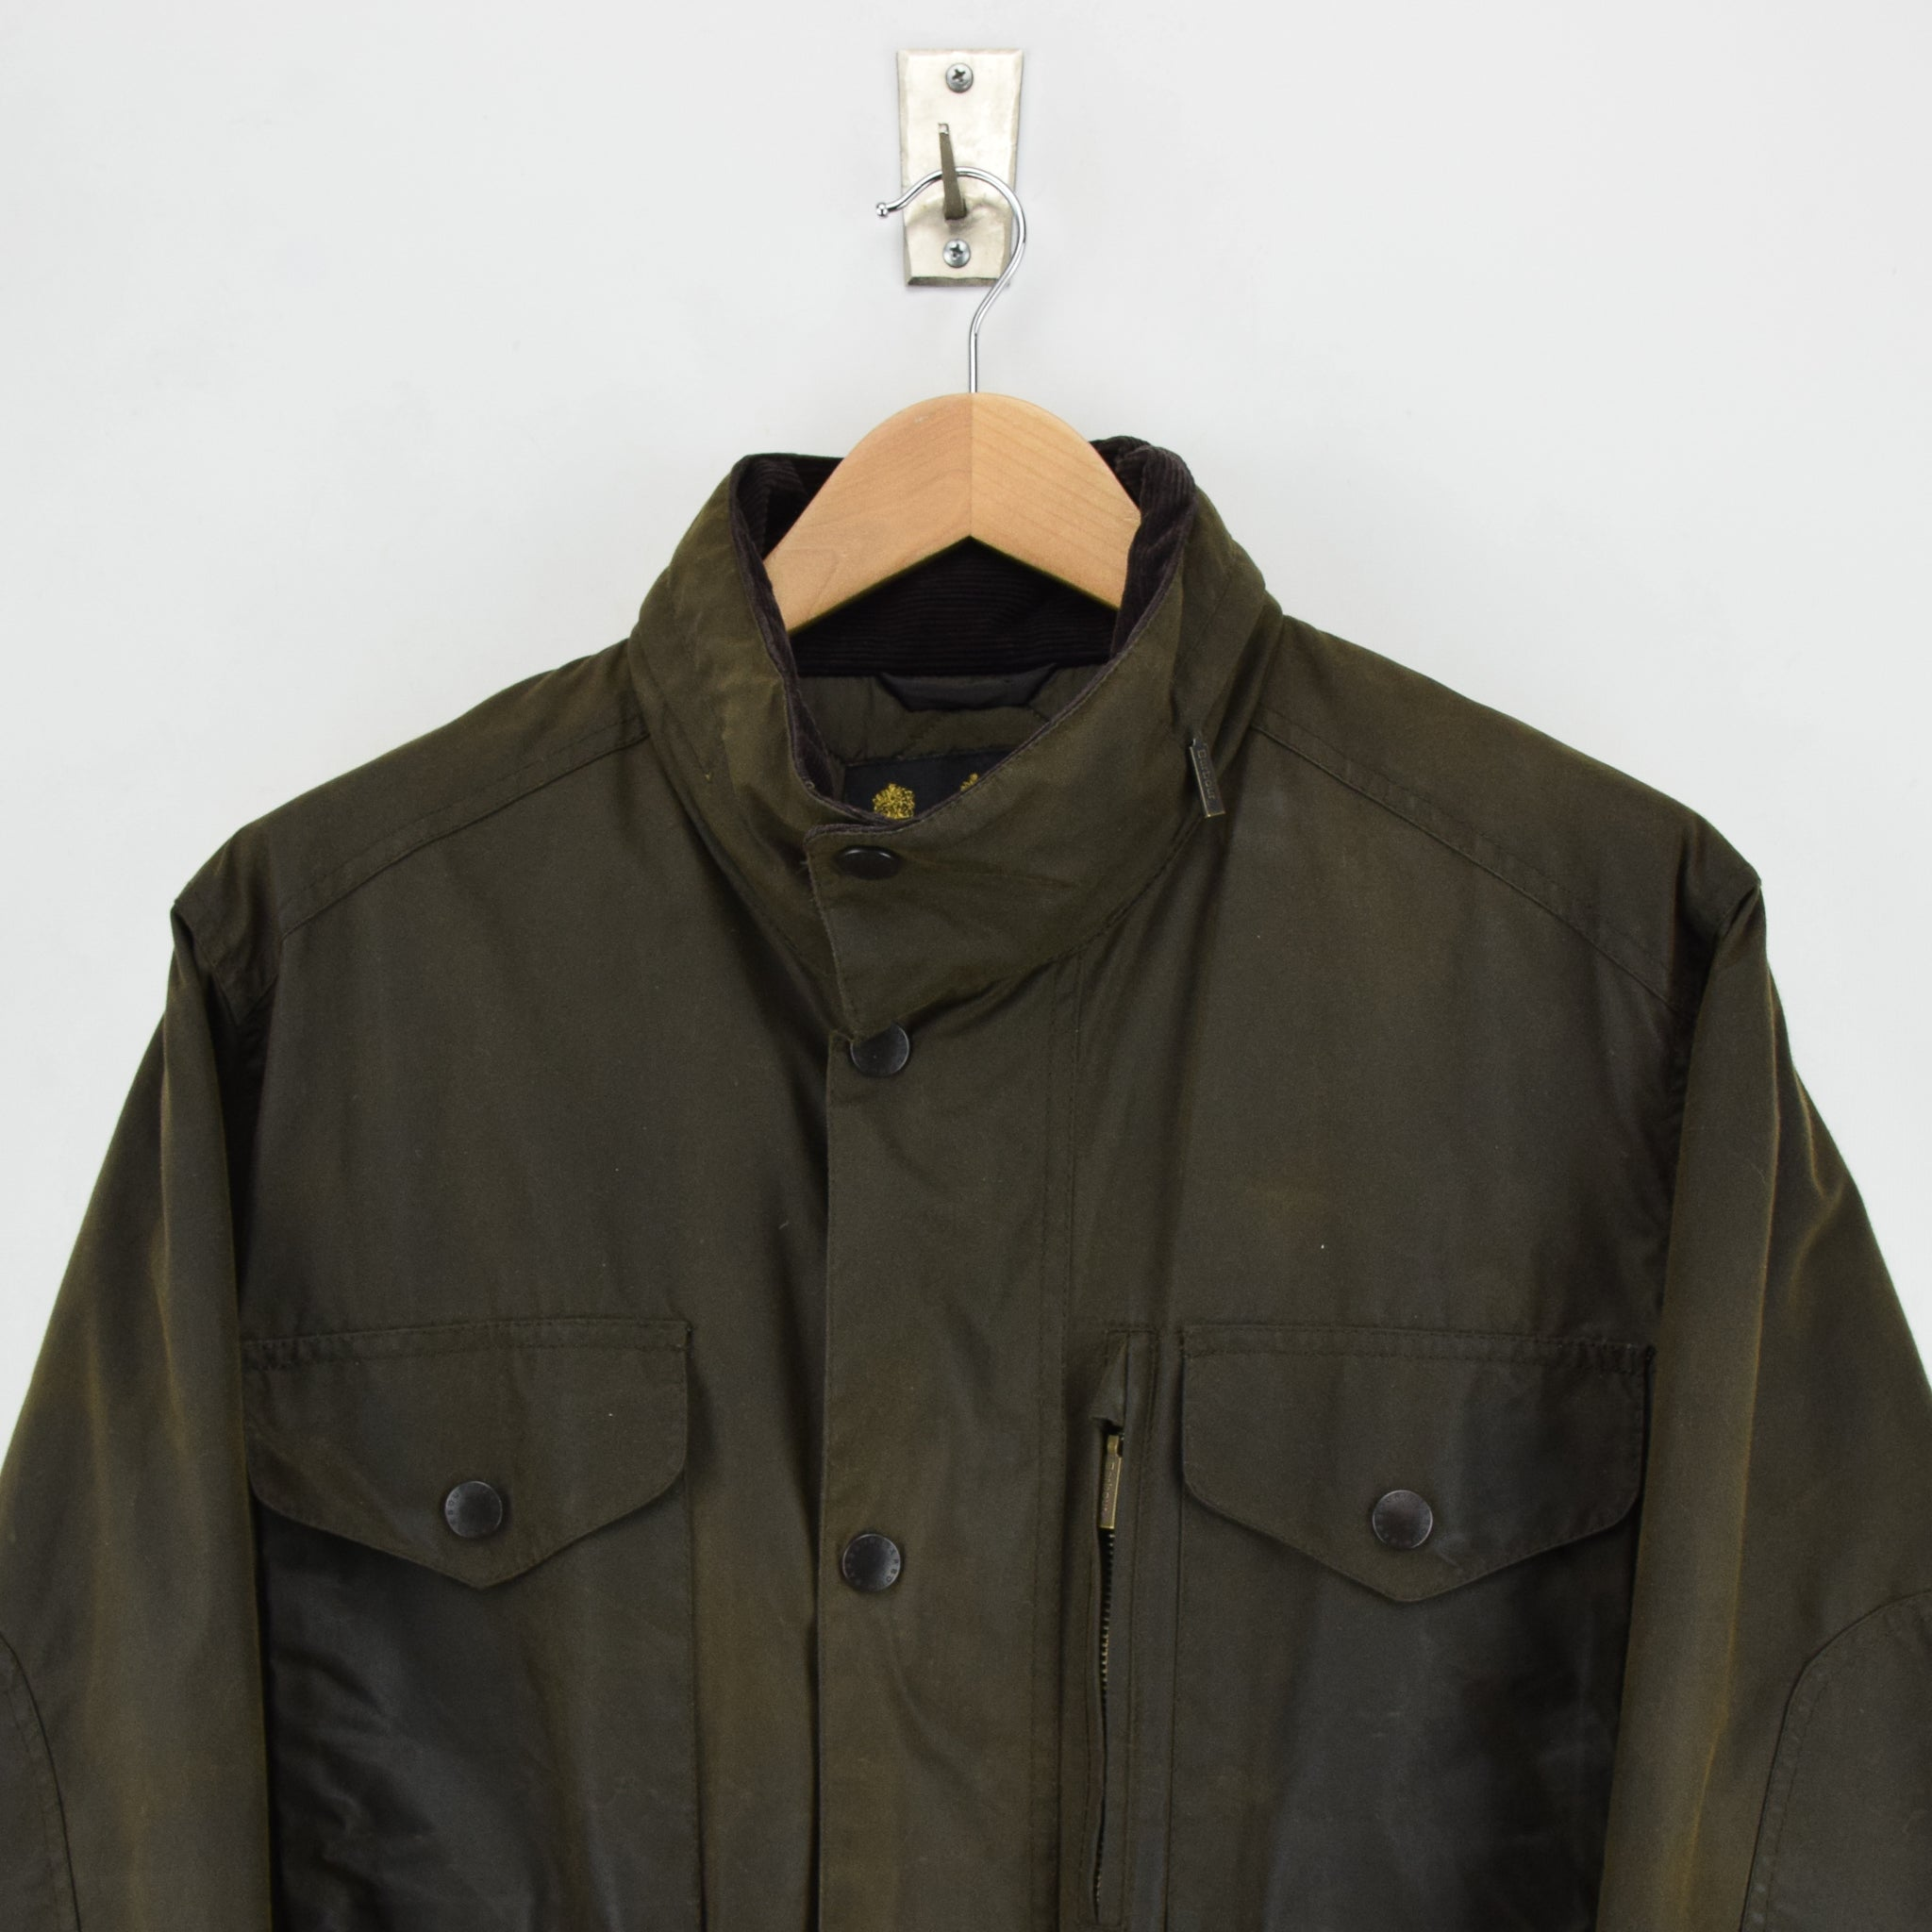 Barbour A342 Sapper Olive Green Wax Jacket Army Style Coat L chestt